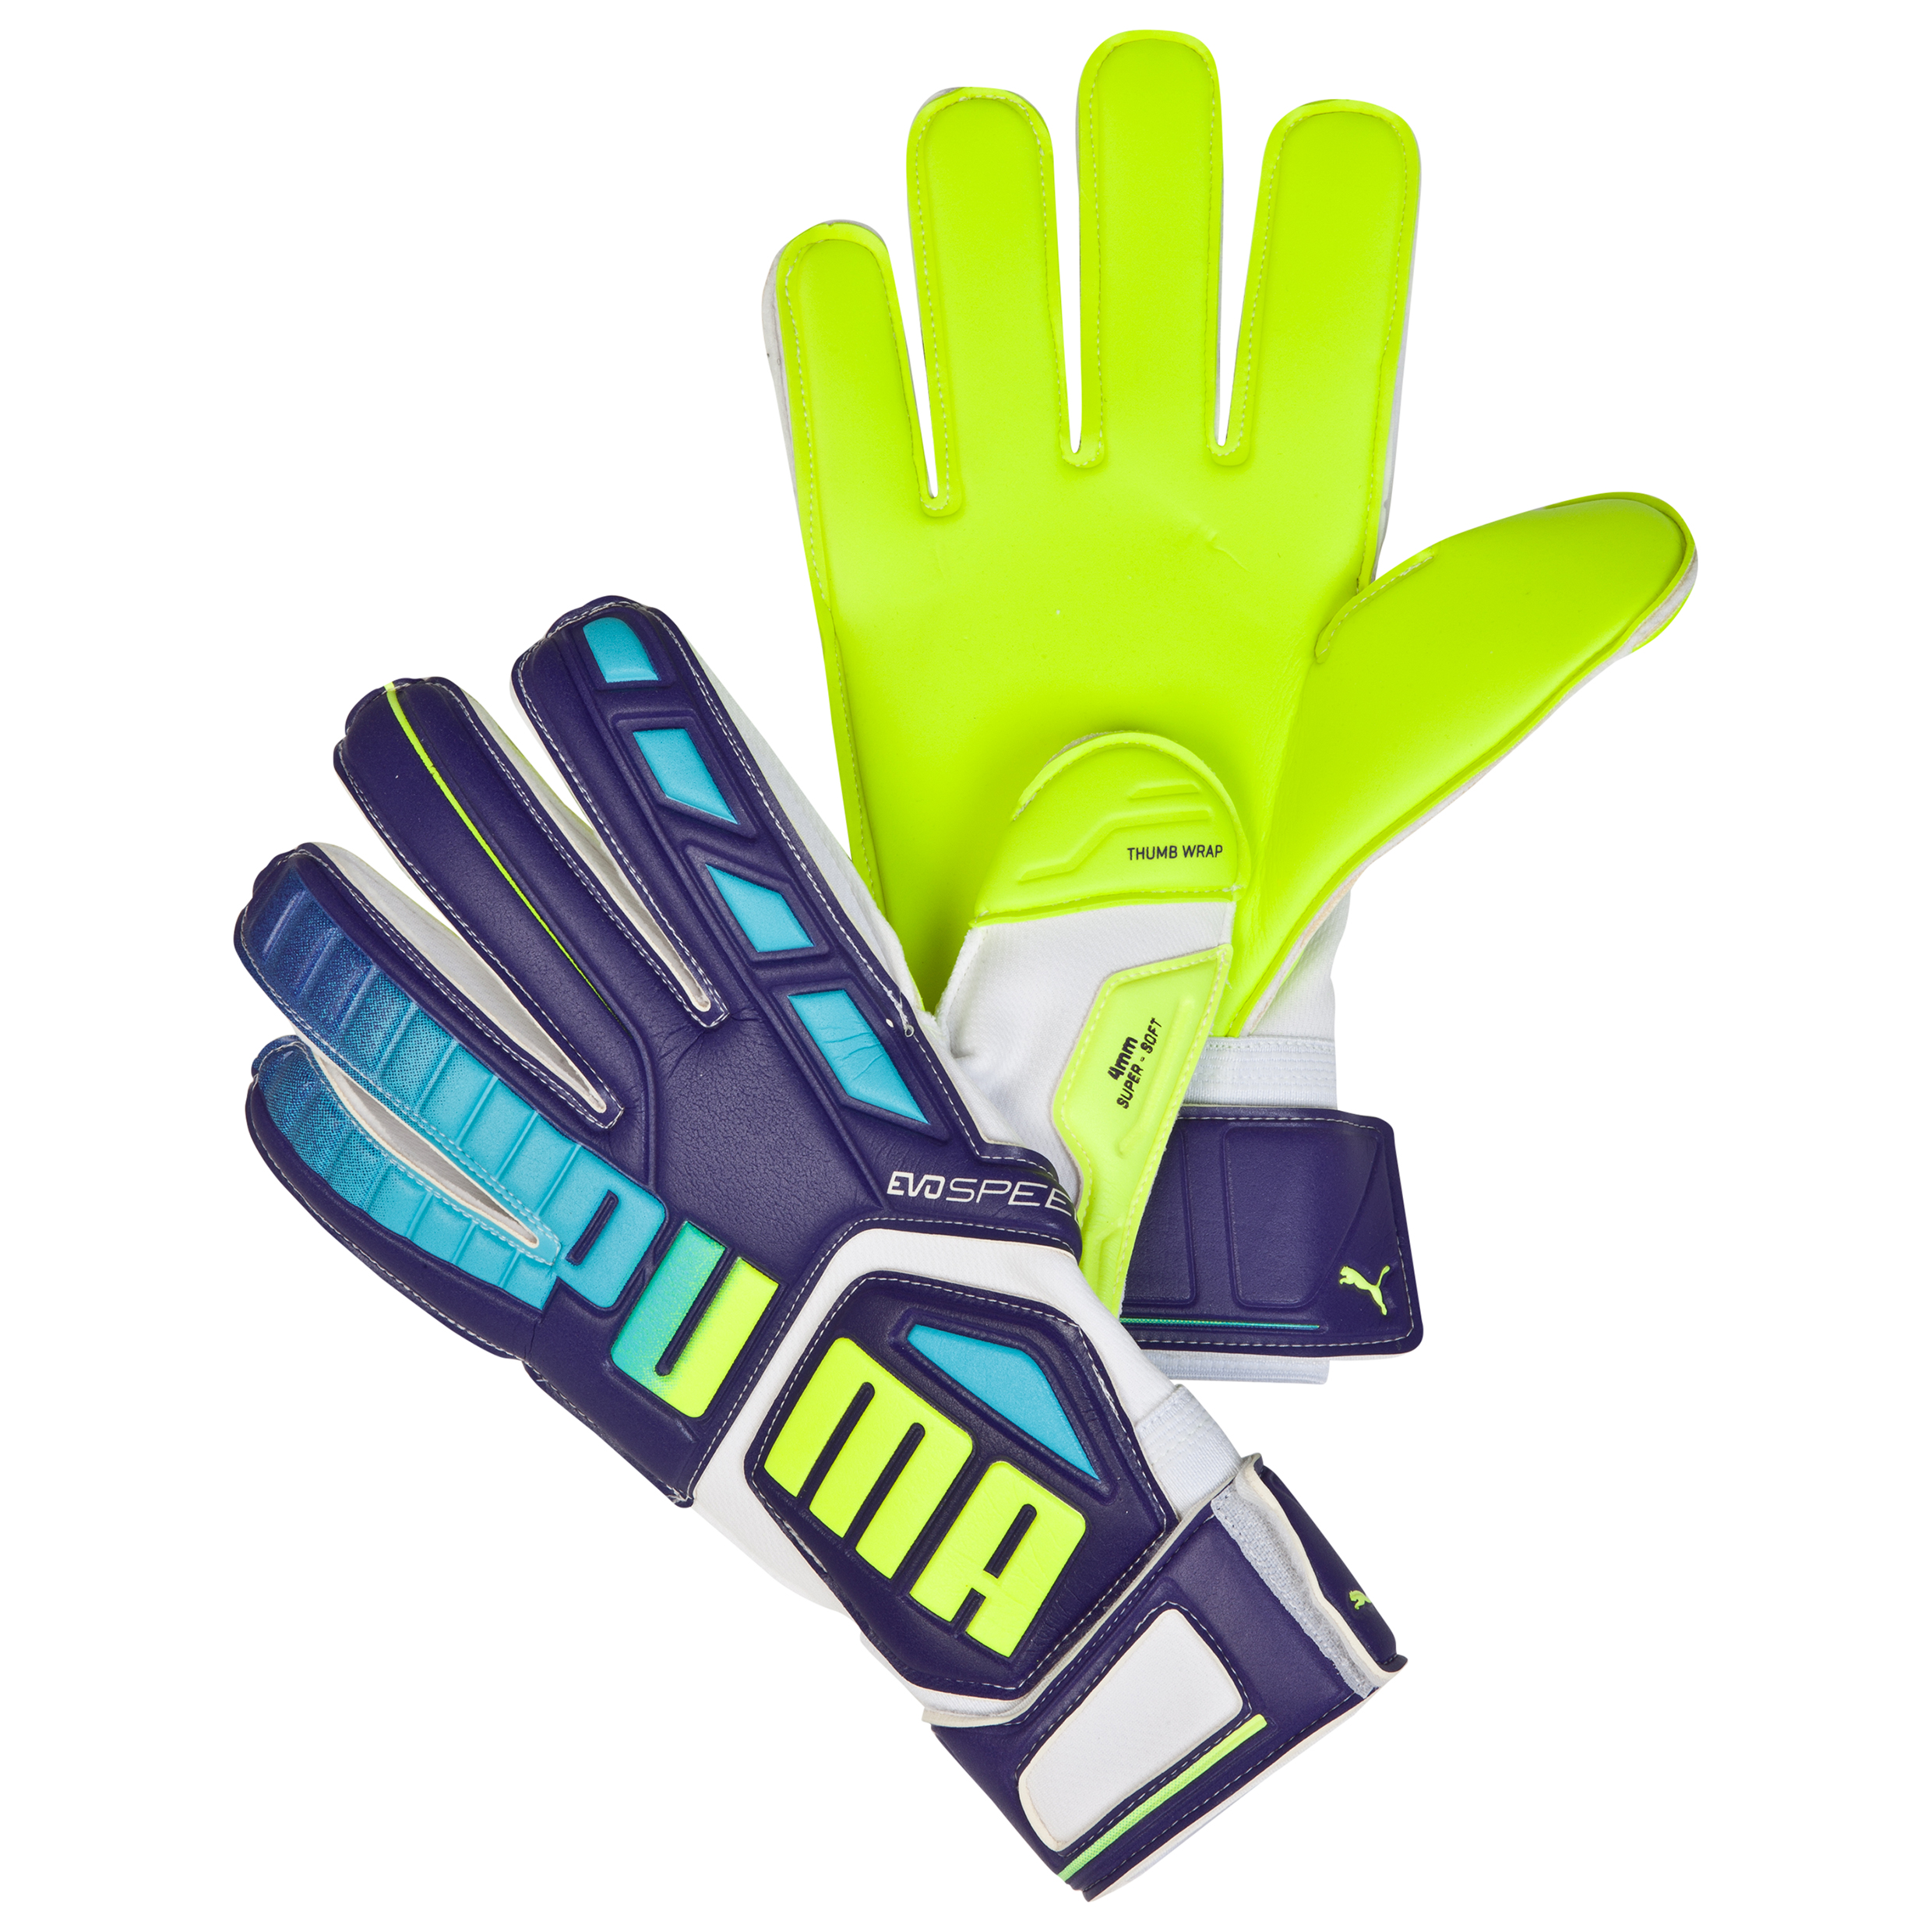 Puma evoSPEED 3.3 Goalkeeper Glove Purple